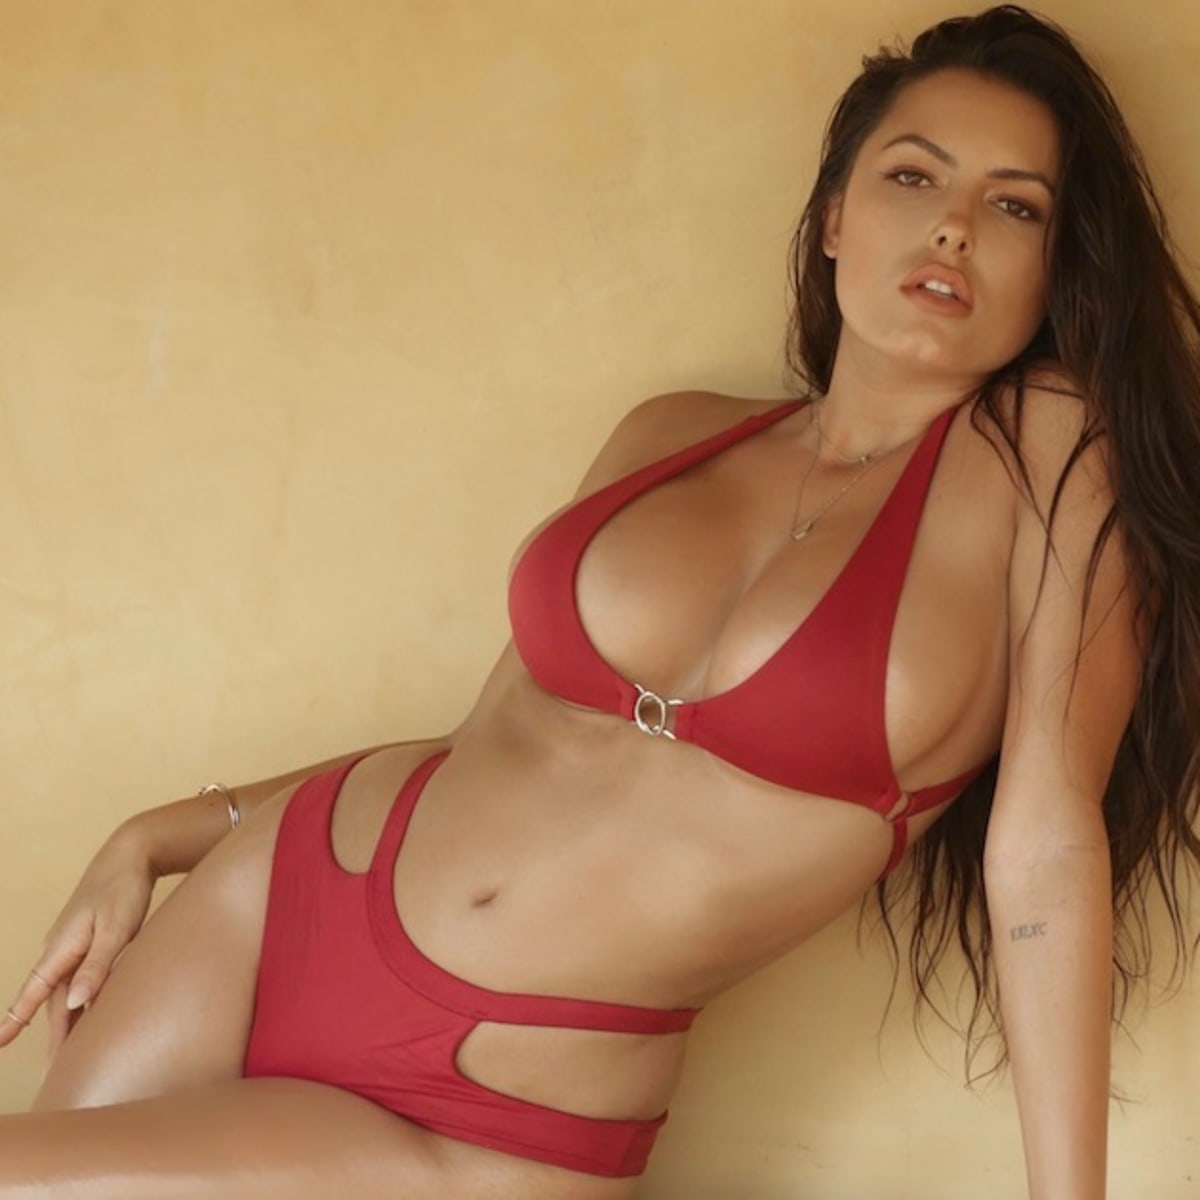 constance nunes outrageous hot red bikini